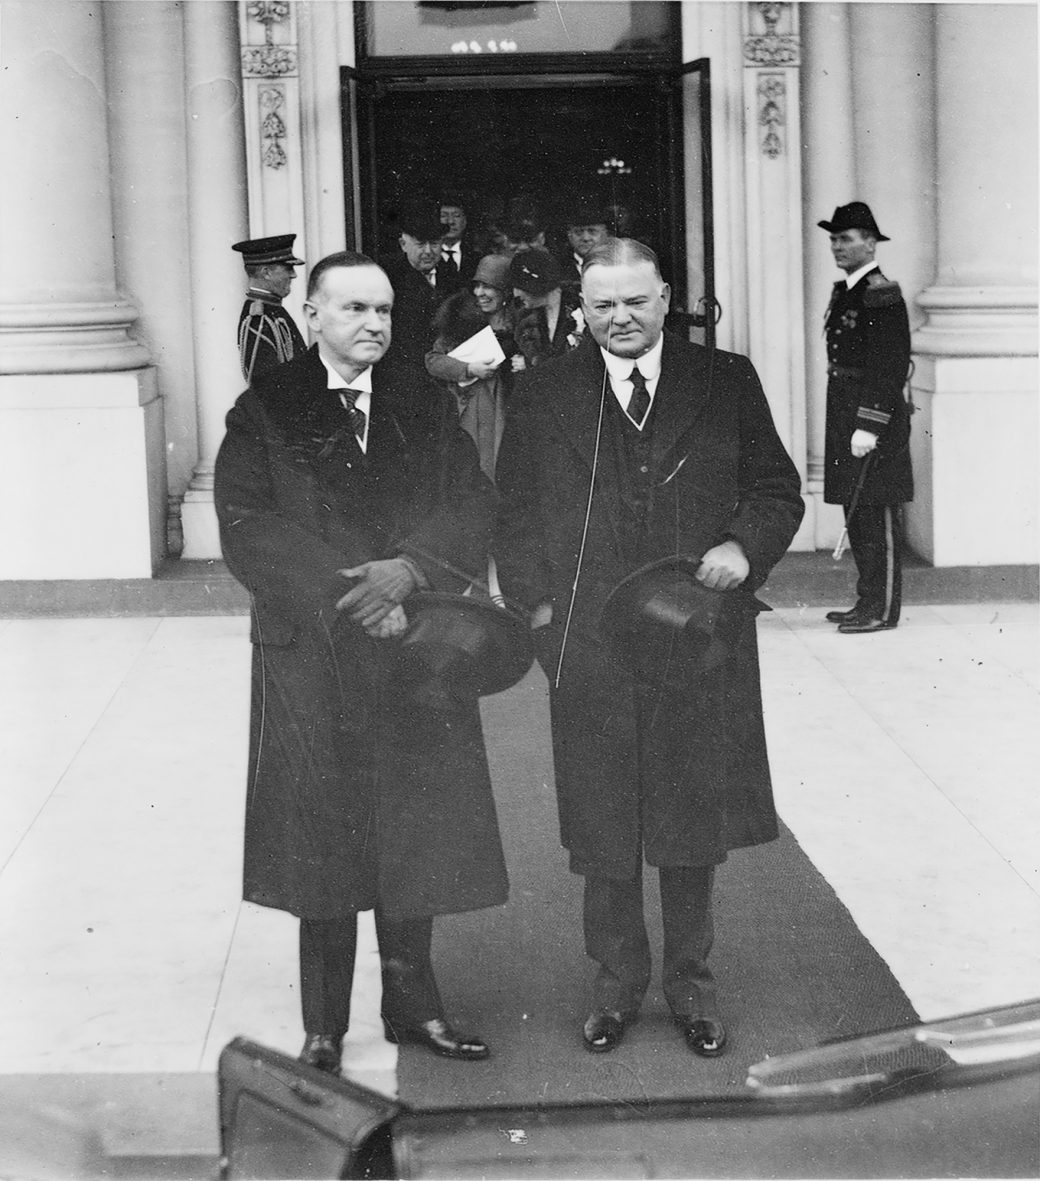 Coolidge and Hoover